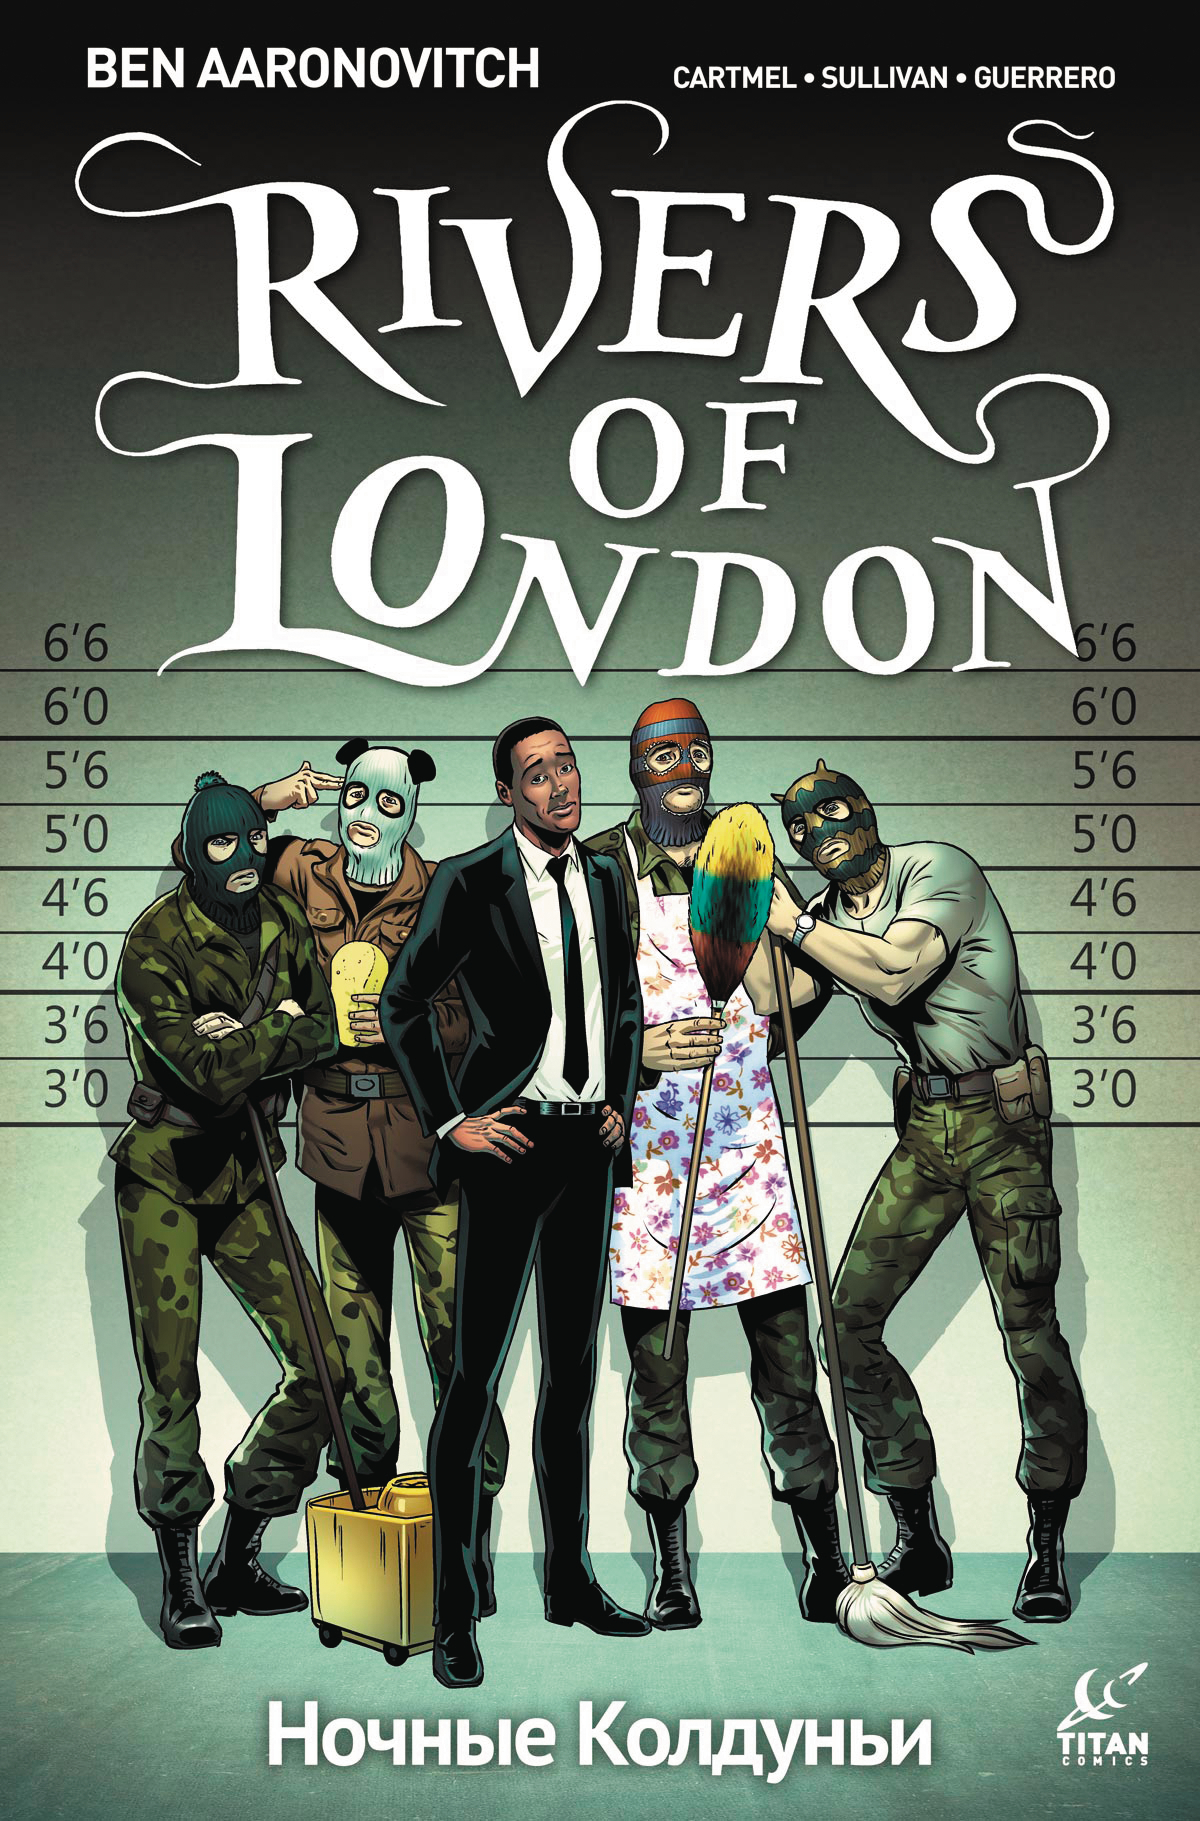 RIVERS OF LONDON NIGHT WITCH #4 (OF 5) CVR A SULLIVAN (MR)